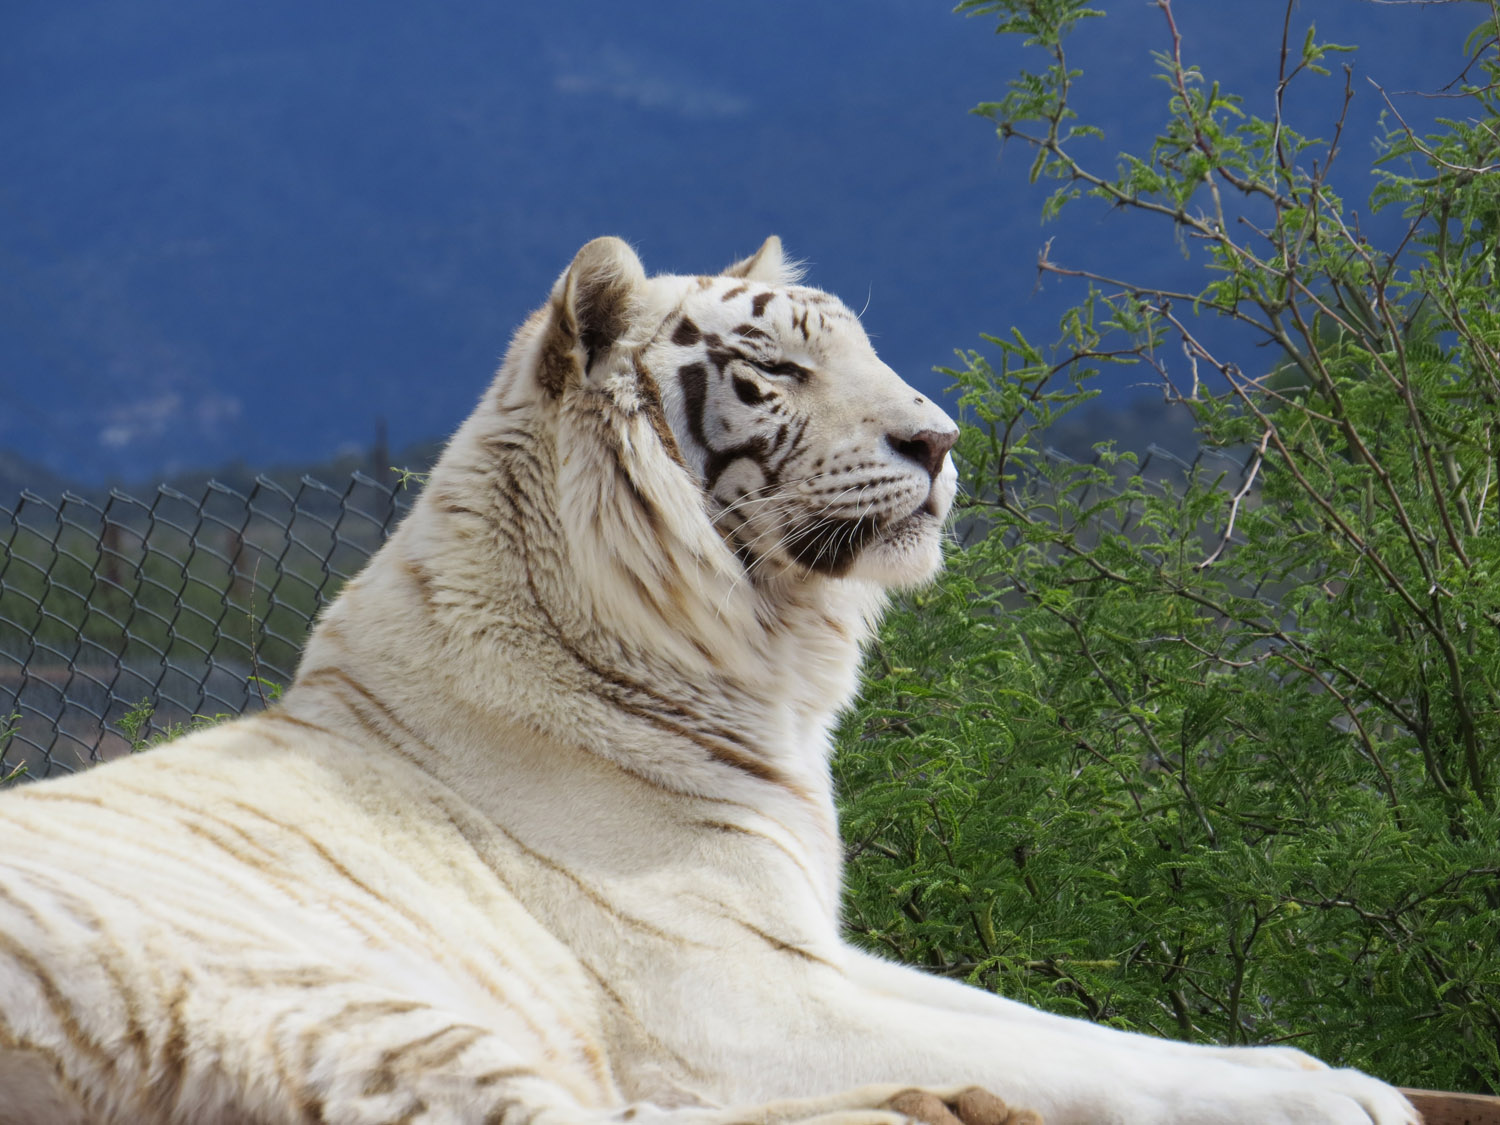 White tiger, Out of Africa Wildlife Park, Camp Verde, Arizona, April 30, 2016